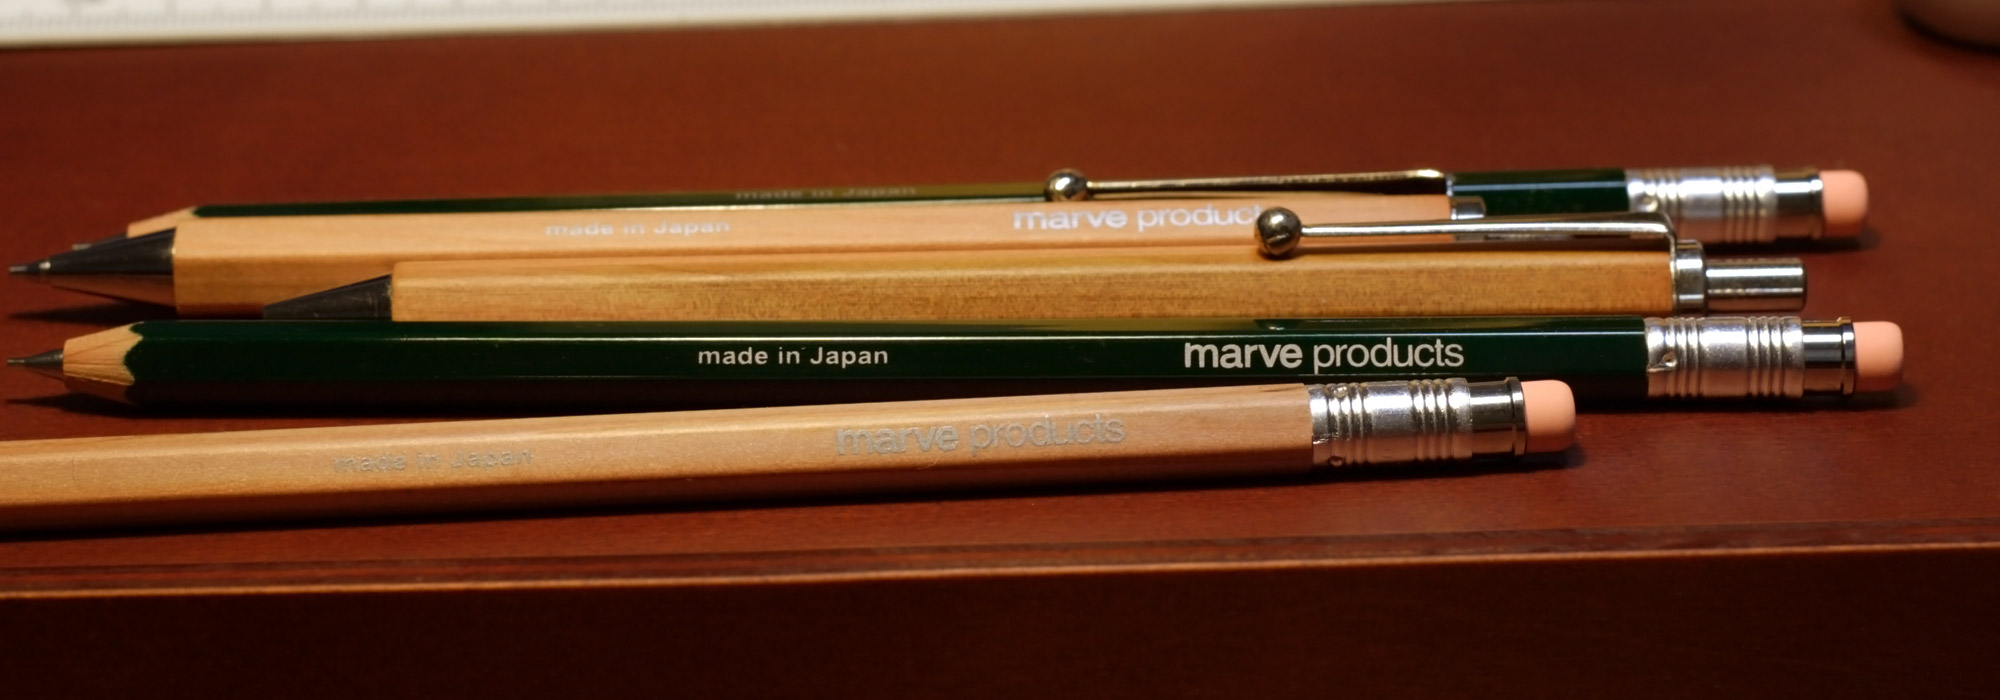 marve-products 木軸ペン